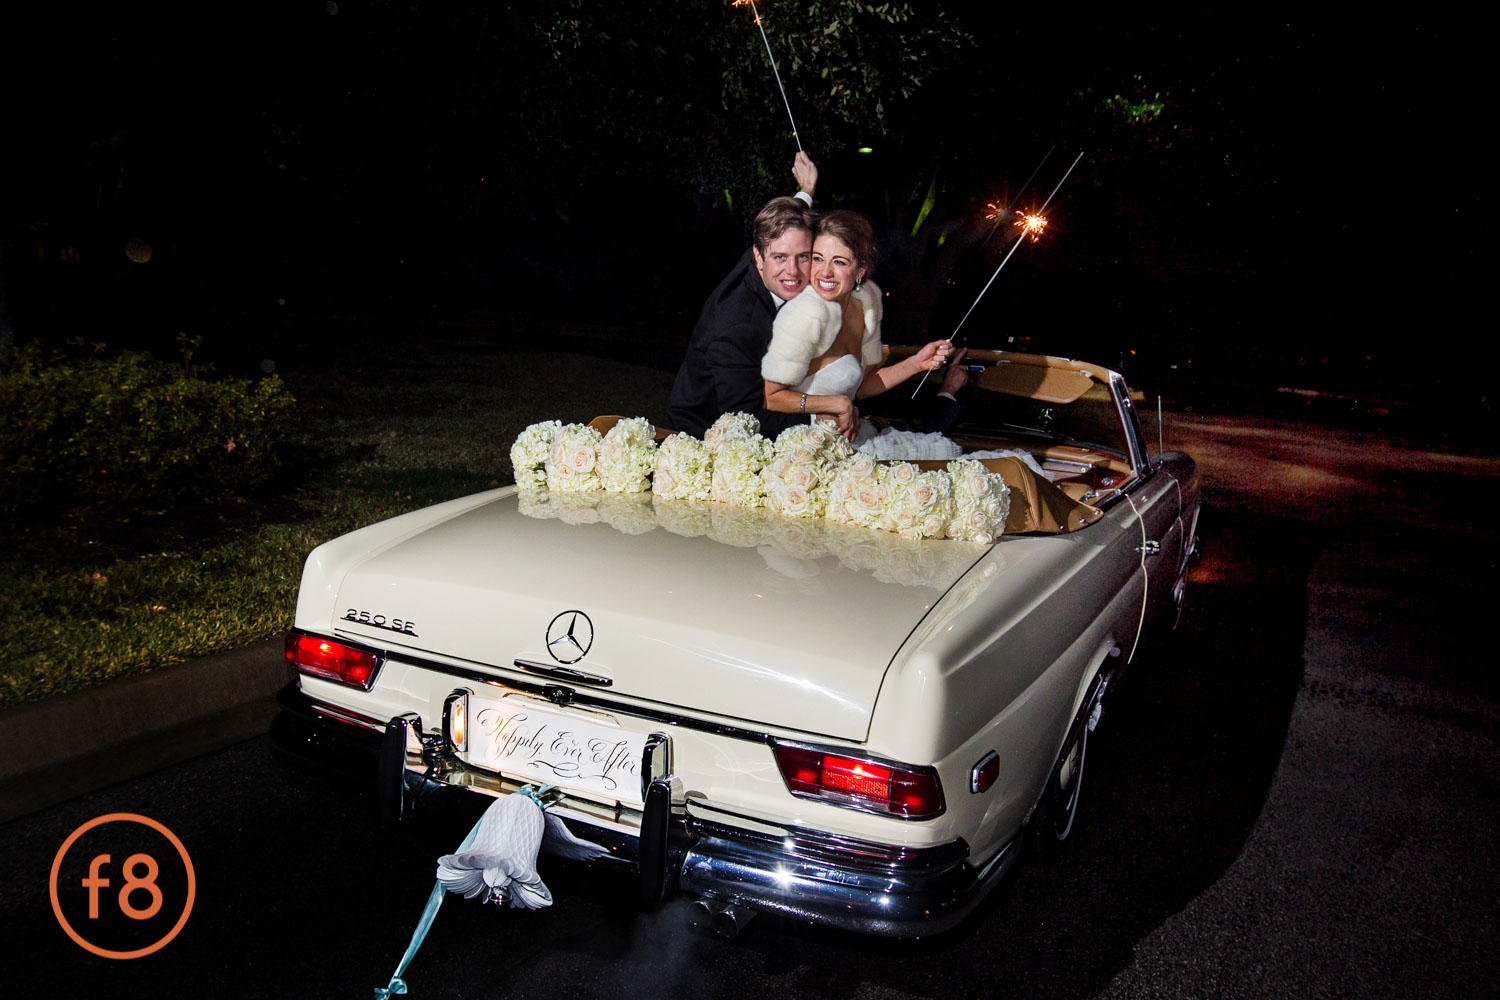 Mercedes Benz is the way to leave a wedding.